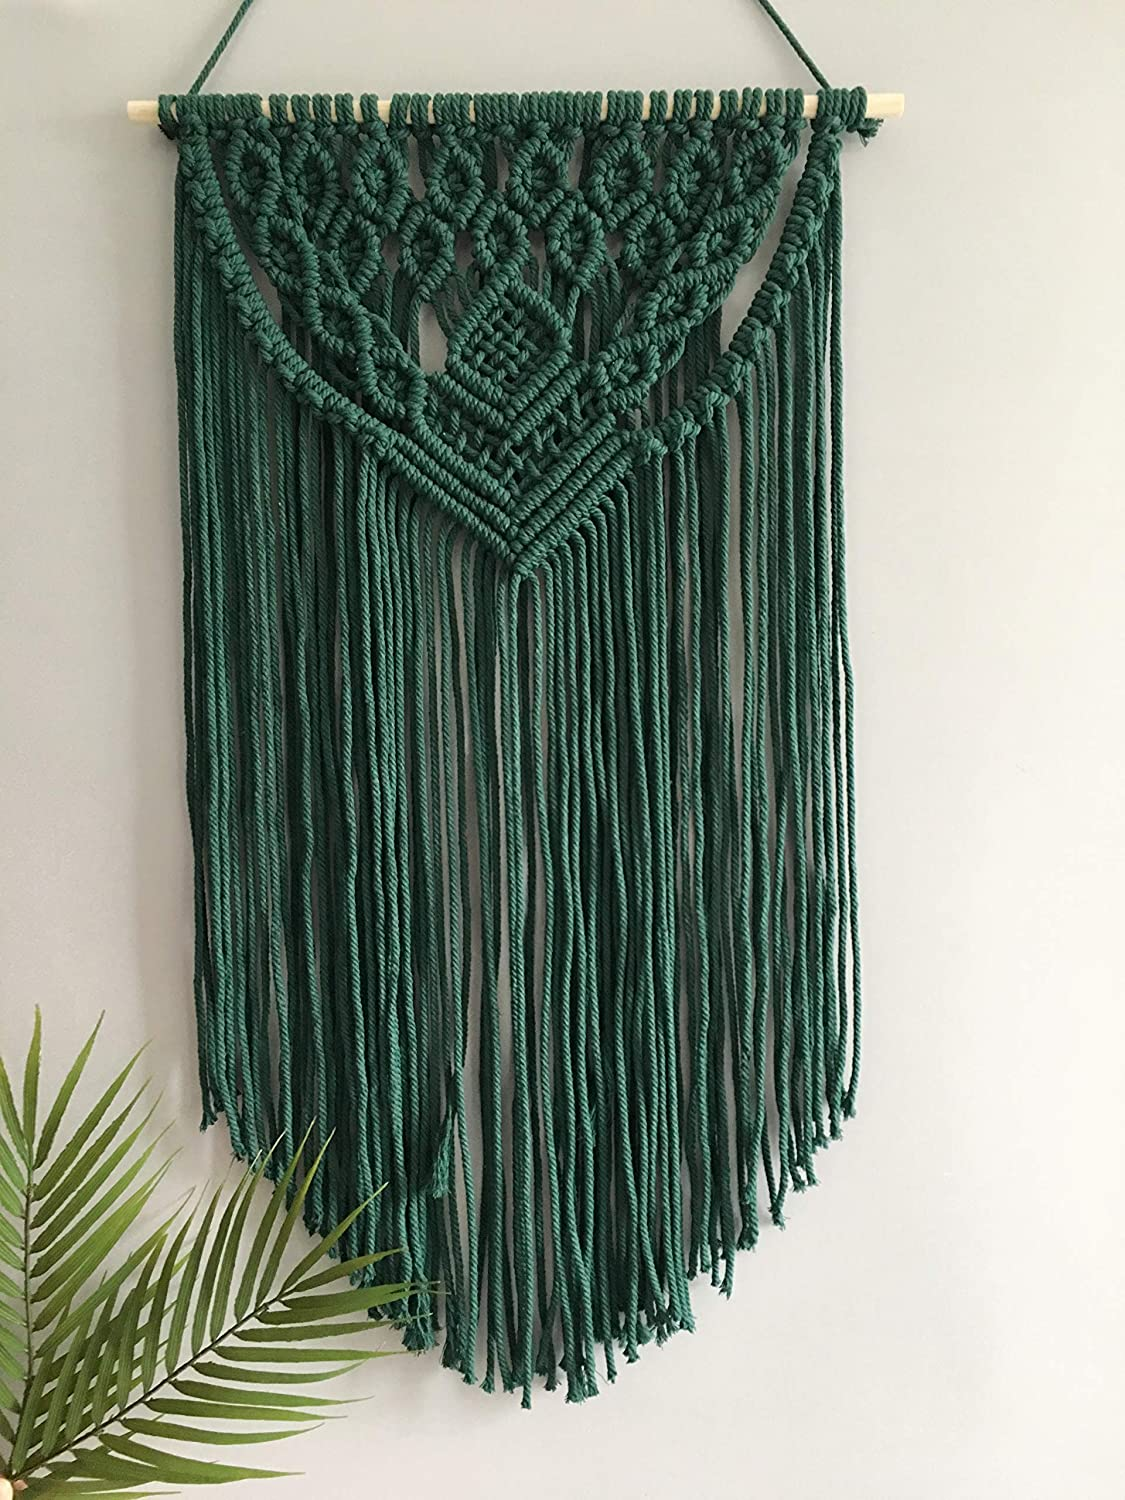 Winterdemoon Macrame Wall Hanging Boho Decor Max 78% OFF Woven Ranking TOP10 Tapestry Home